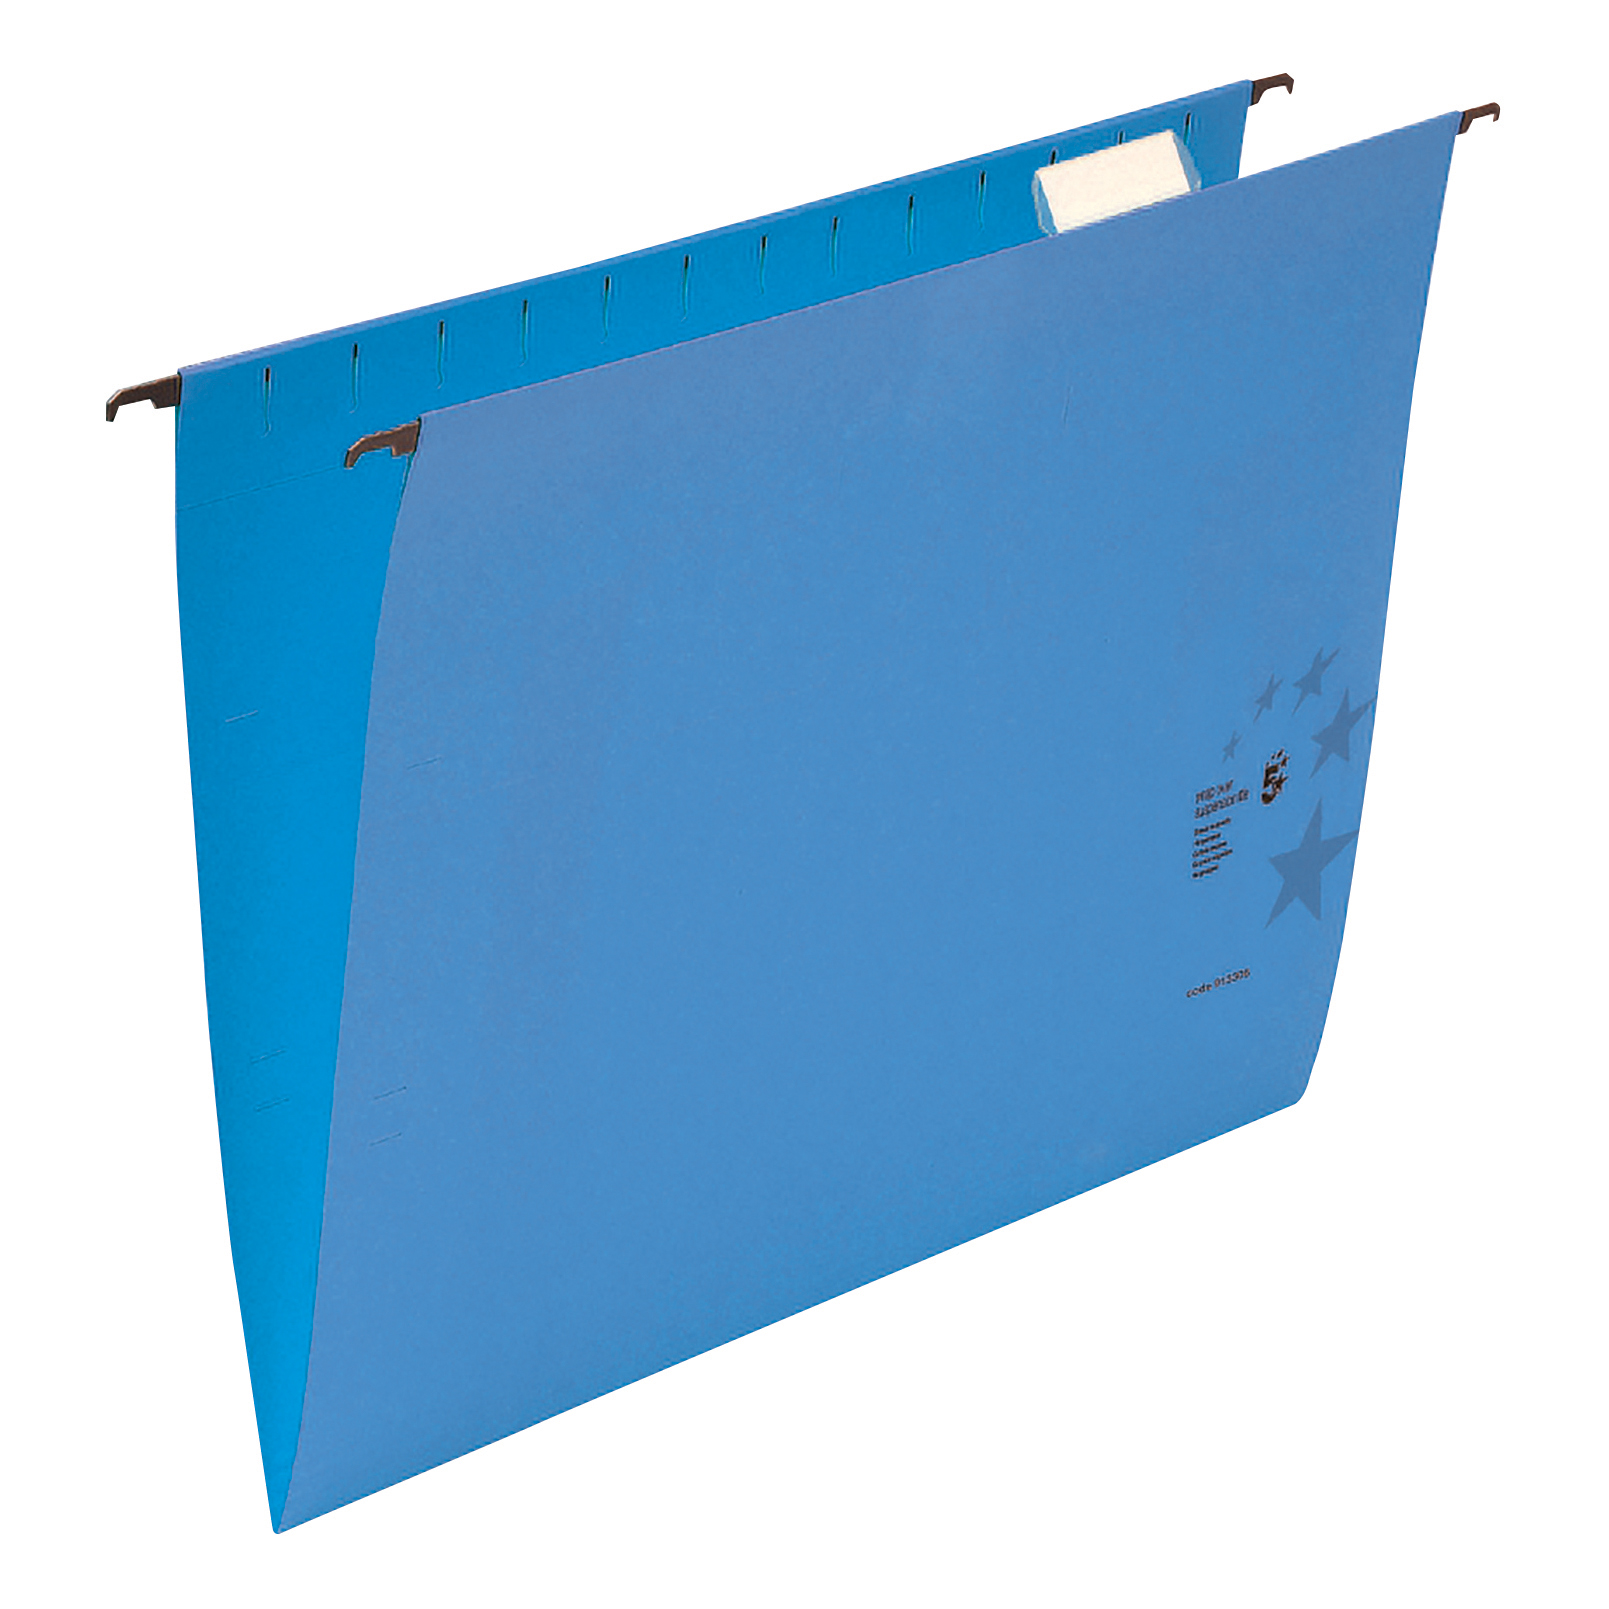 Suspension File 5 Star Office Suspension File with Tabs and Inserts Manilla 15mm V-base 230gsm Foolscap Blue Pack 50